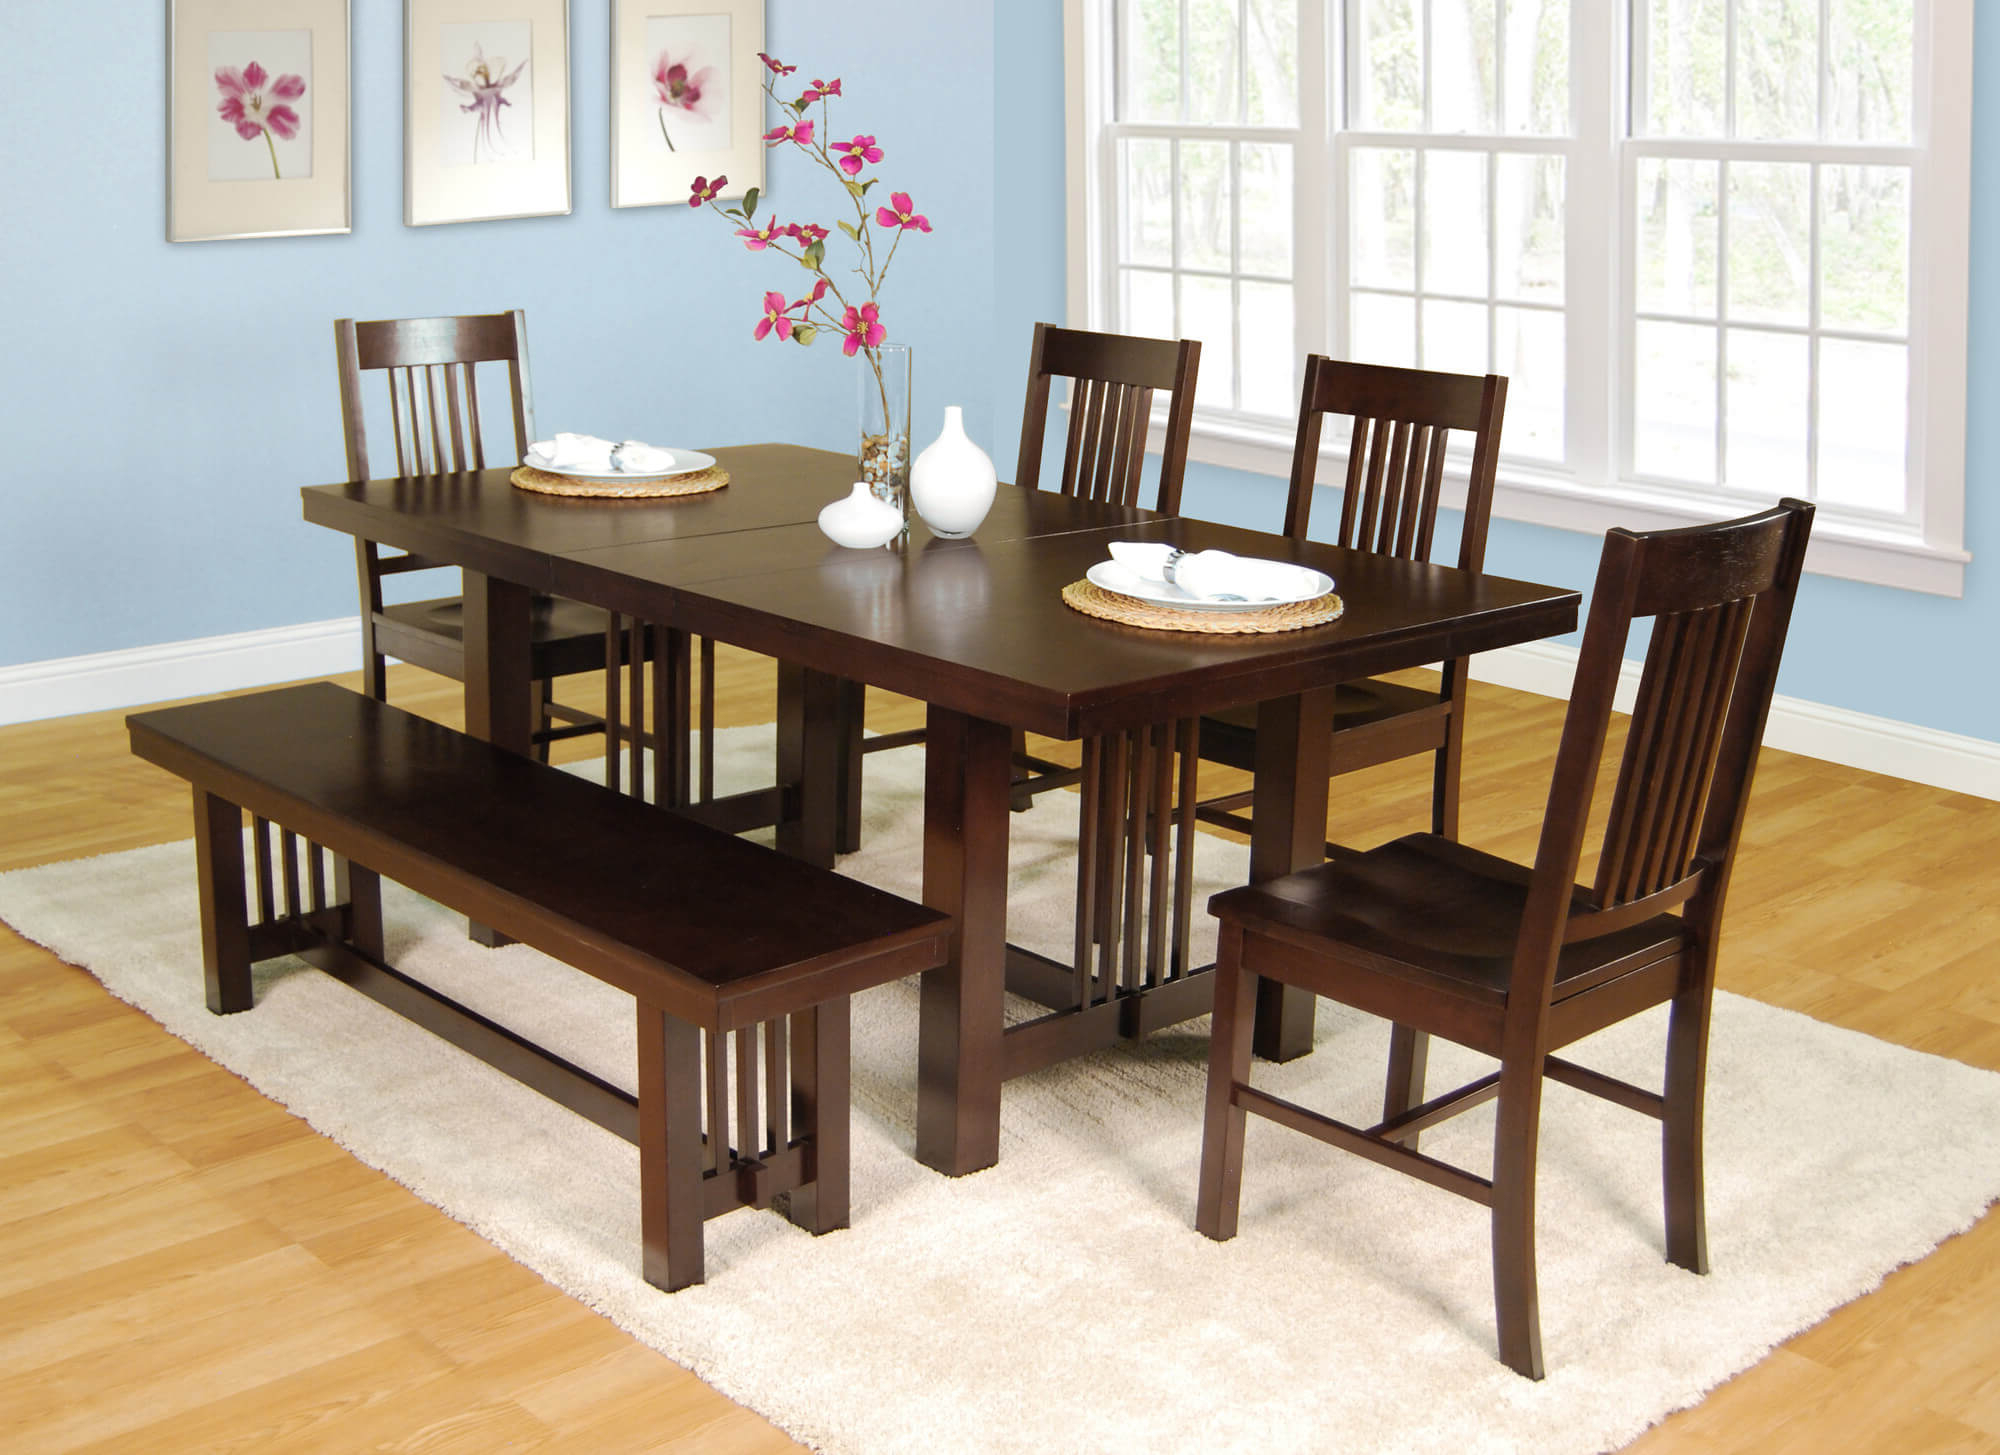 Most Popular 10 Modern Walnut Finish Dining Room Table Set Furniture Intended For 8 Seater Wood Contemporary Dining Tables With Extension Leaf (View 18 of 25)